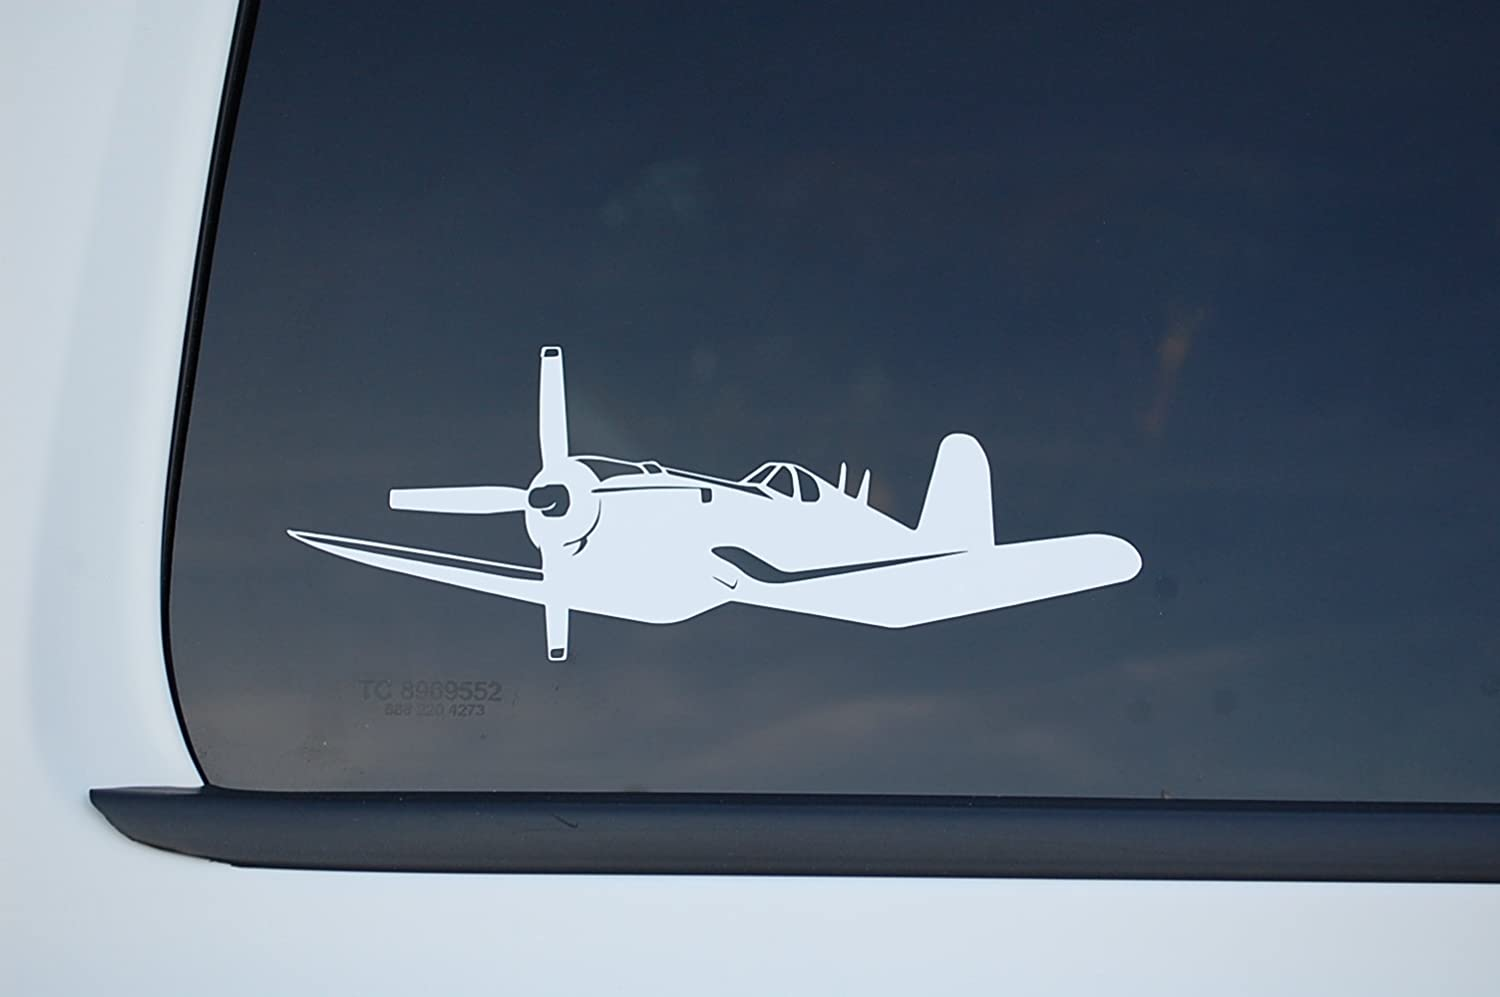 "Corsair Airplane Sticker Vinyl Decal CHOOSE COLOR!! 8"" X 3"" Warbird Navy Fighter Plane Military Car Window Laptop (V532) (White)"